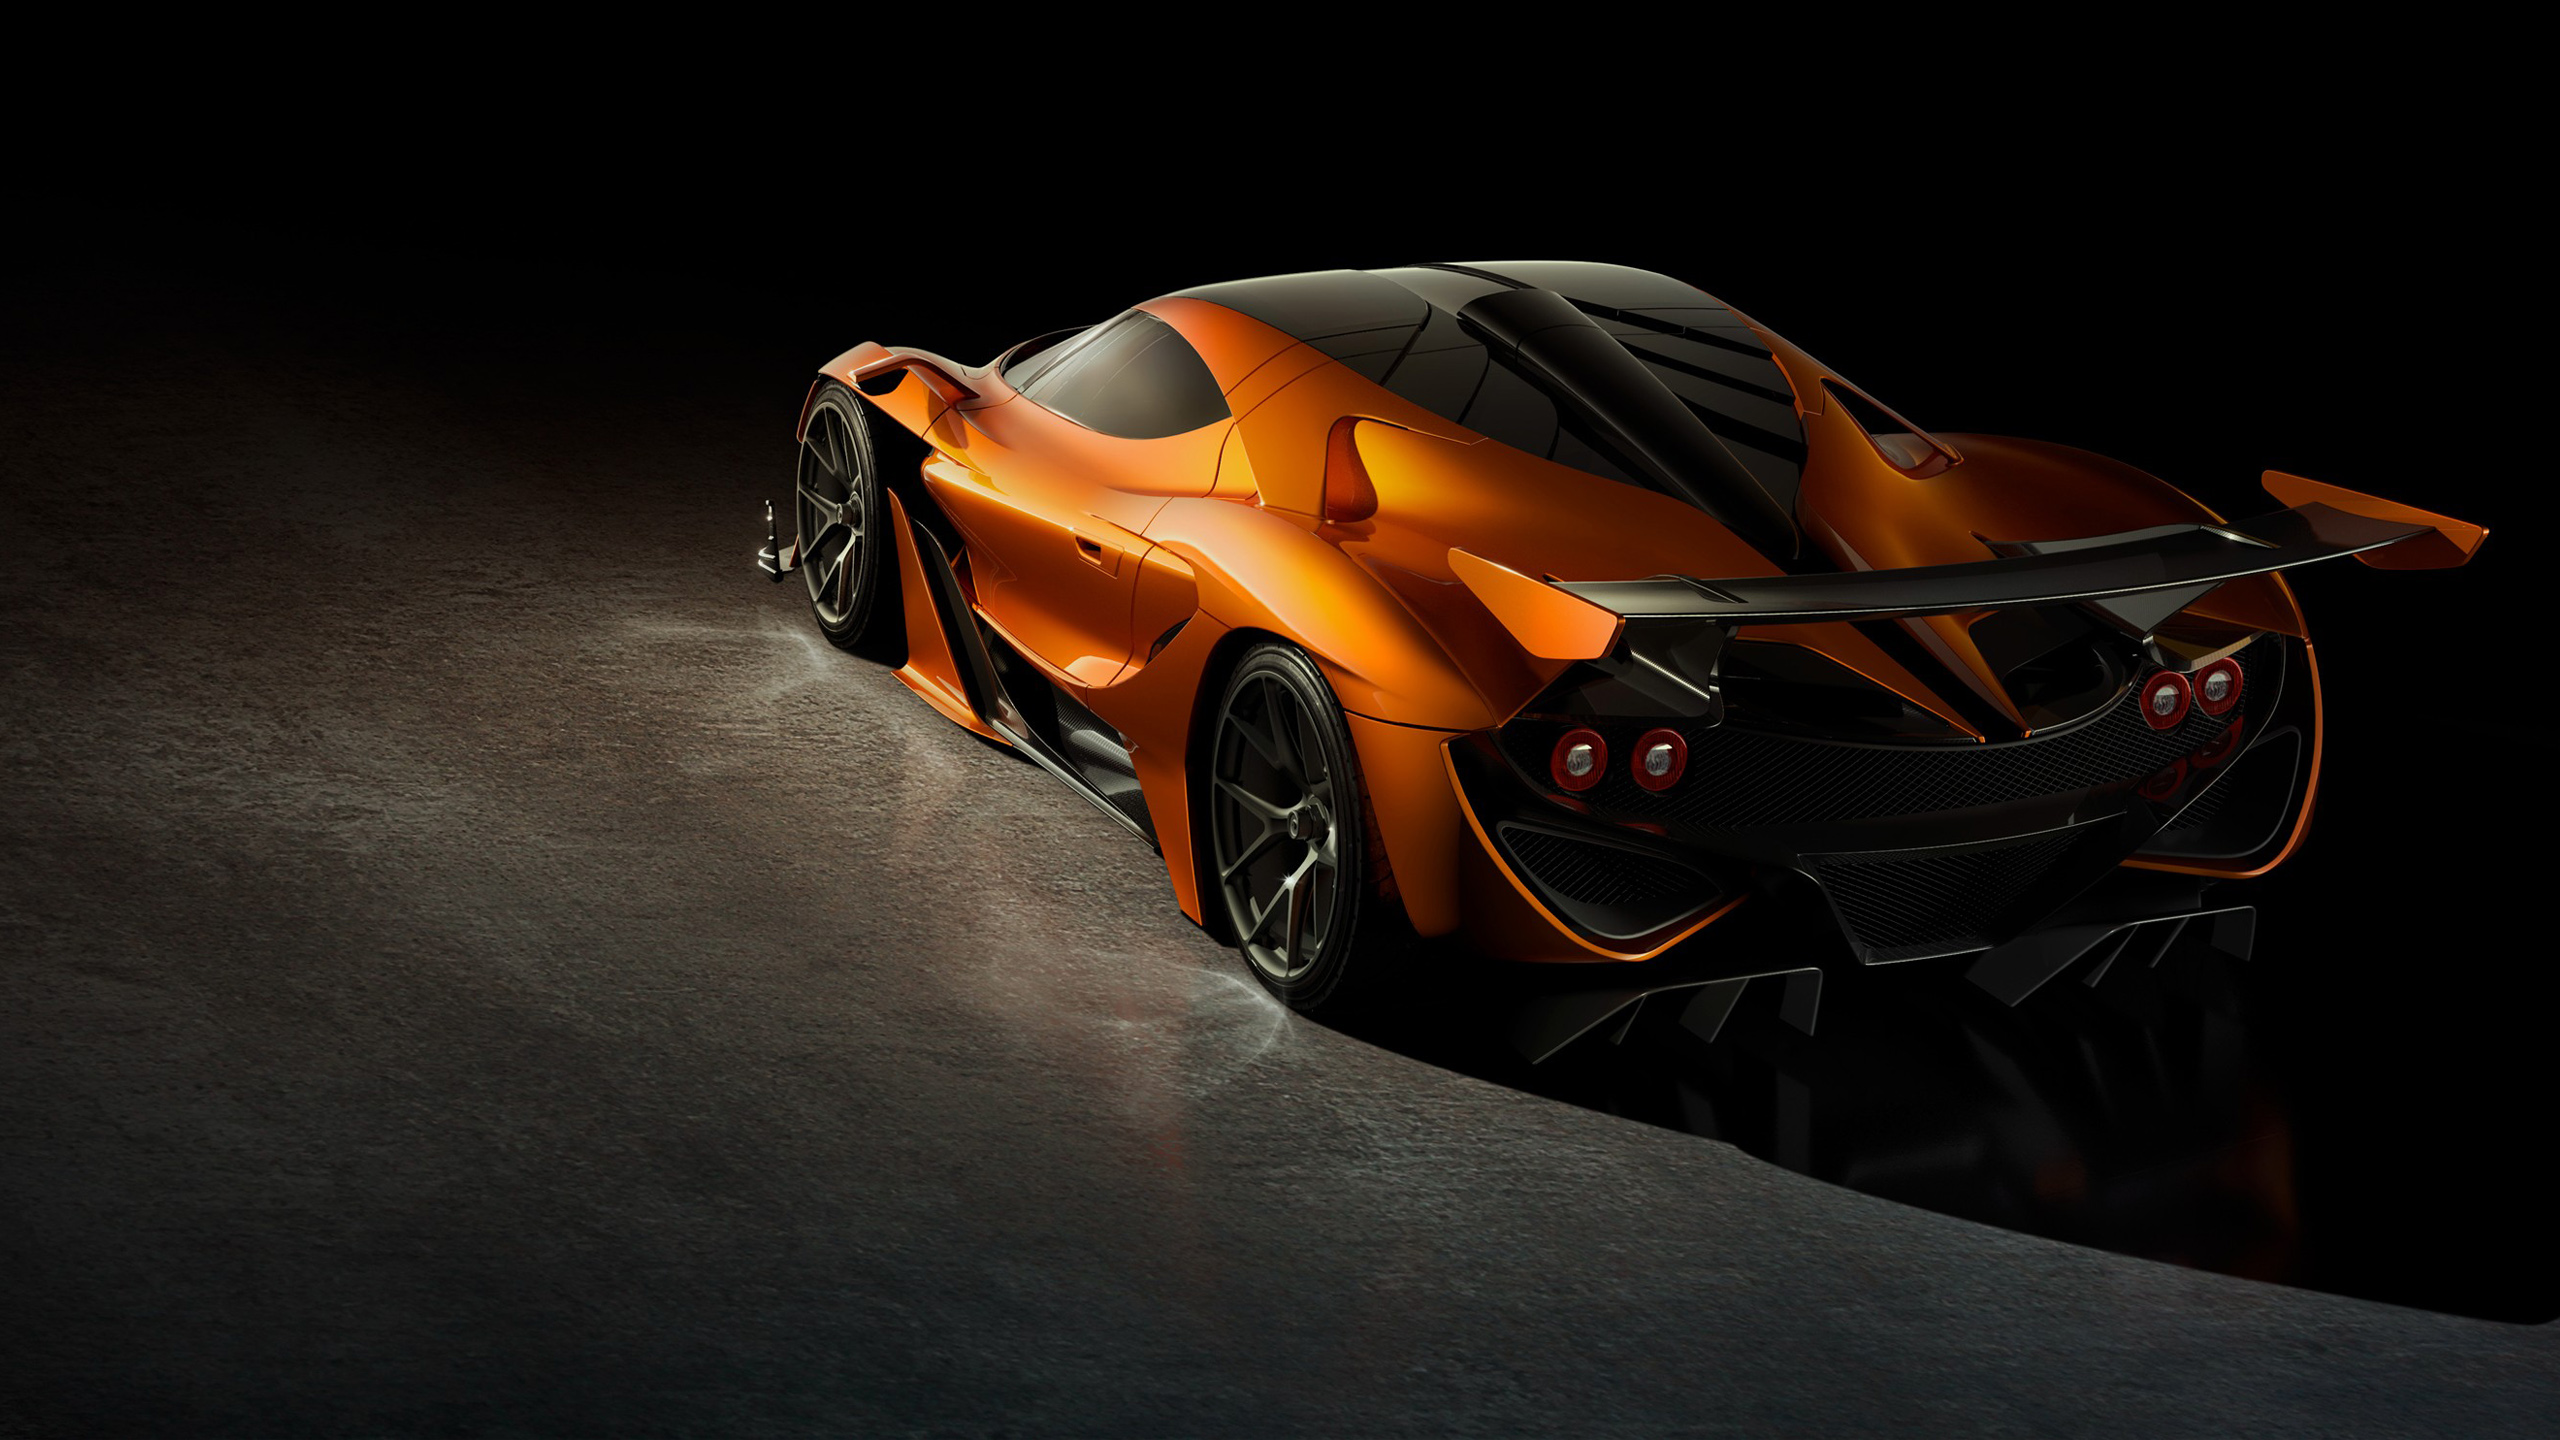 Apollo arrow 1000hp car wallpaper hd car wallpapers id - Cars hd wallpapers for laptop ...